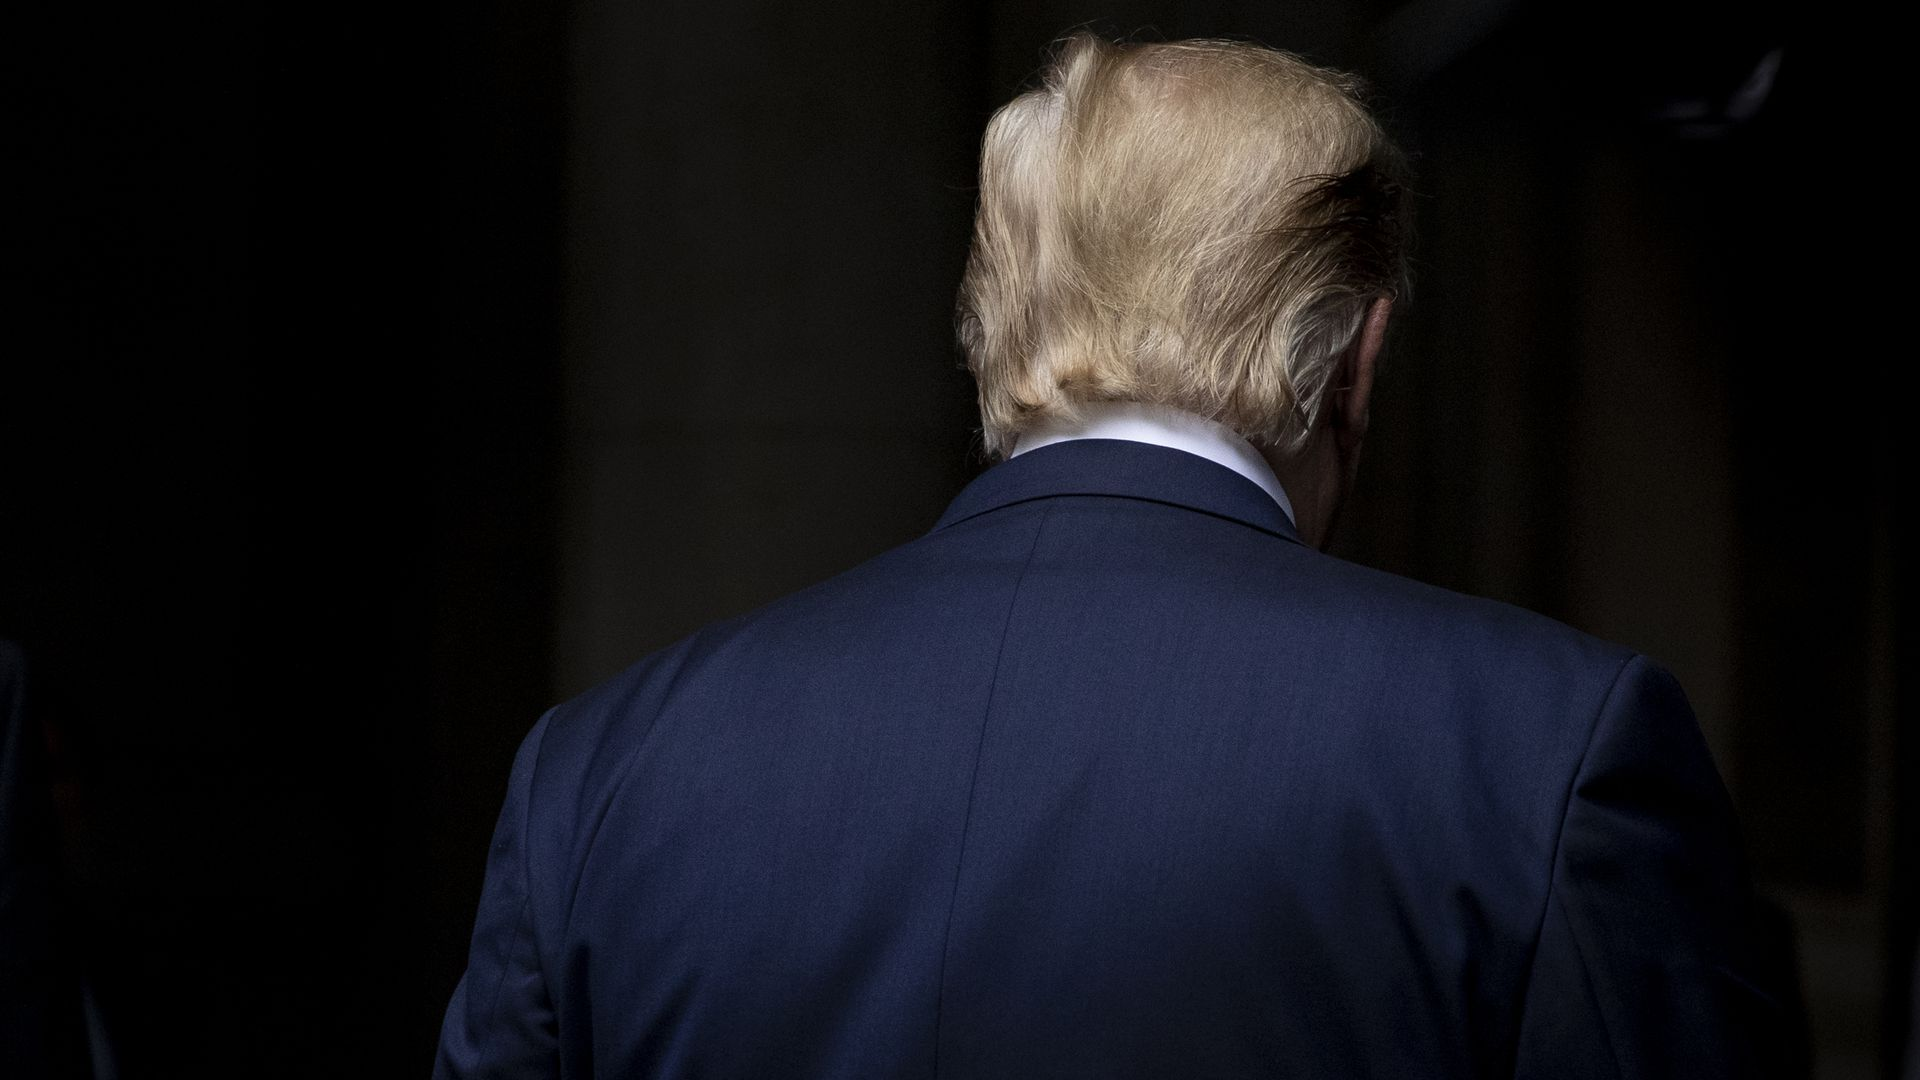 This image shows the back of Trump's head. He's wearing a suit.